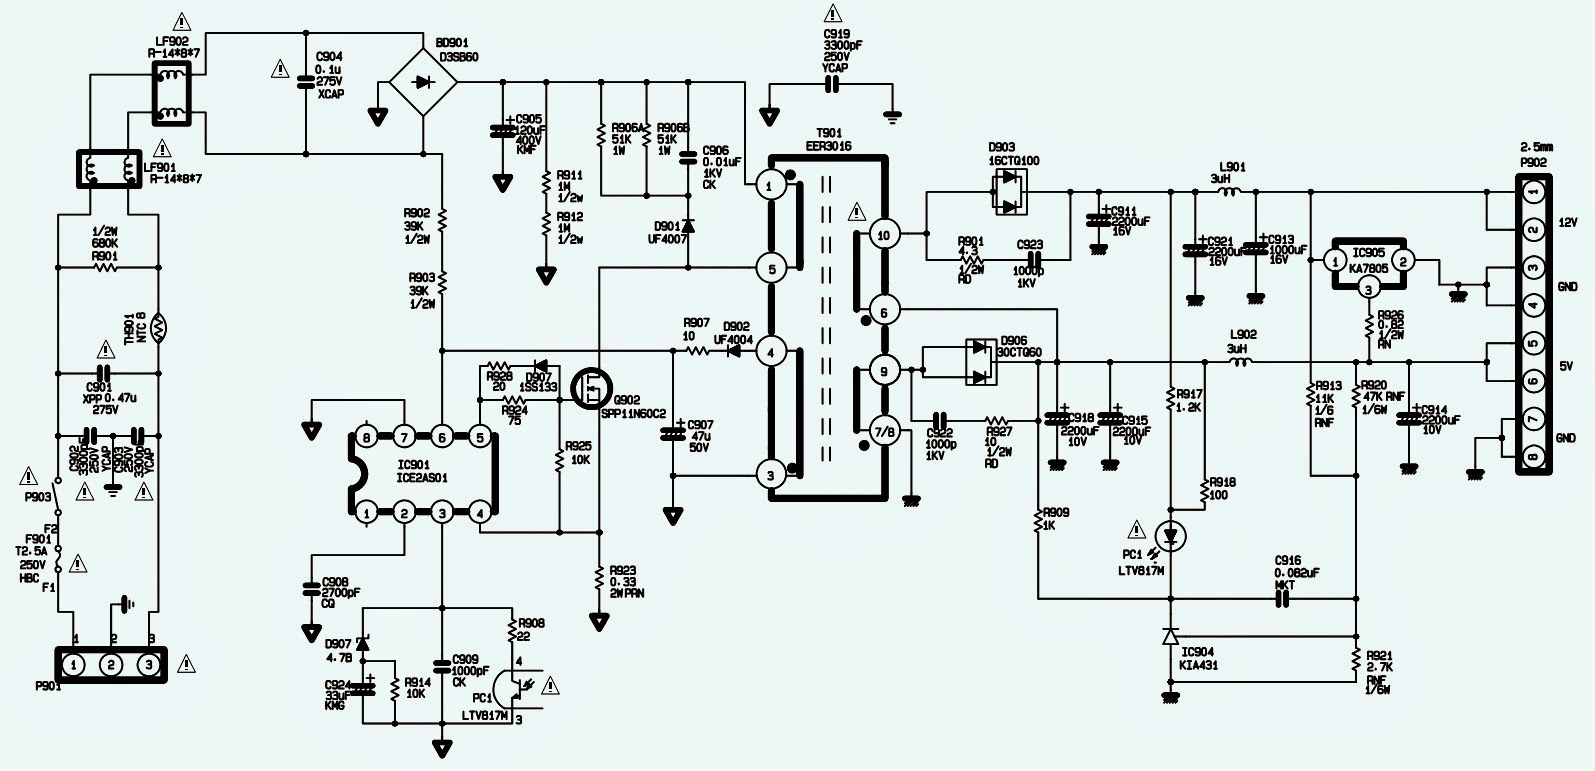 Wiring Diagram Switch Mode Power Supply Circuit Periodic Tutorial Smps Lg Flatron L1810b Monitor Schematic